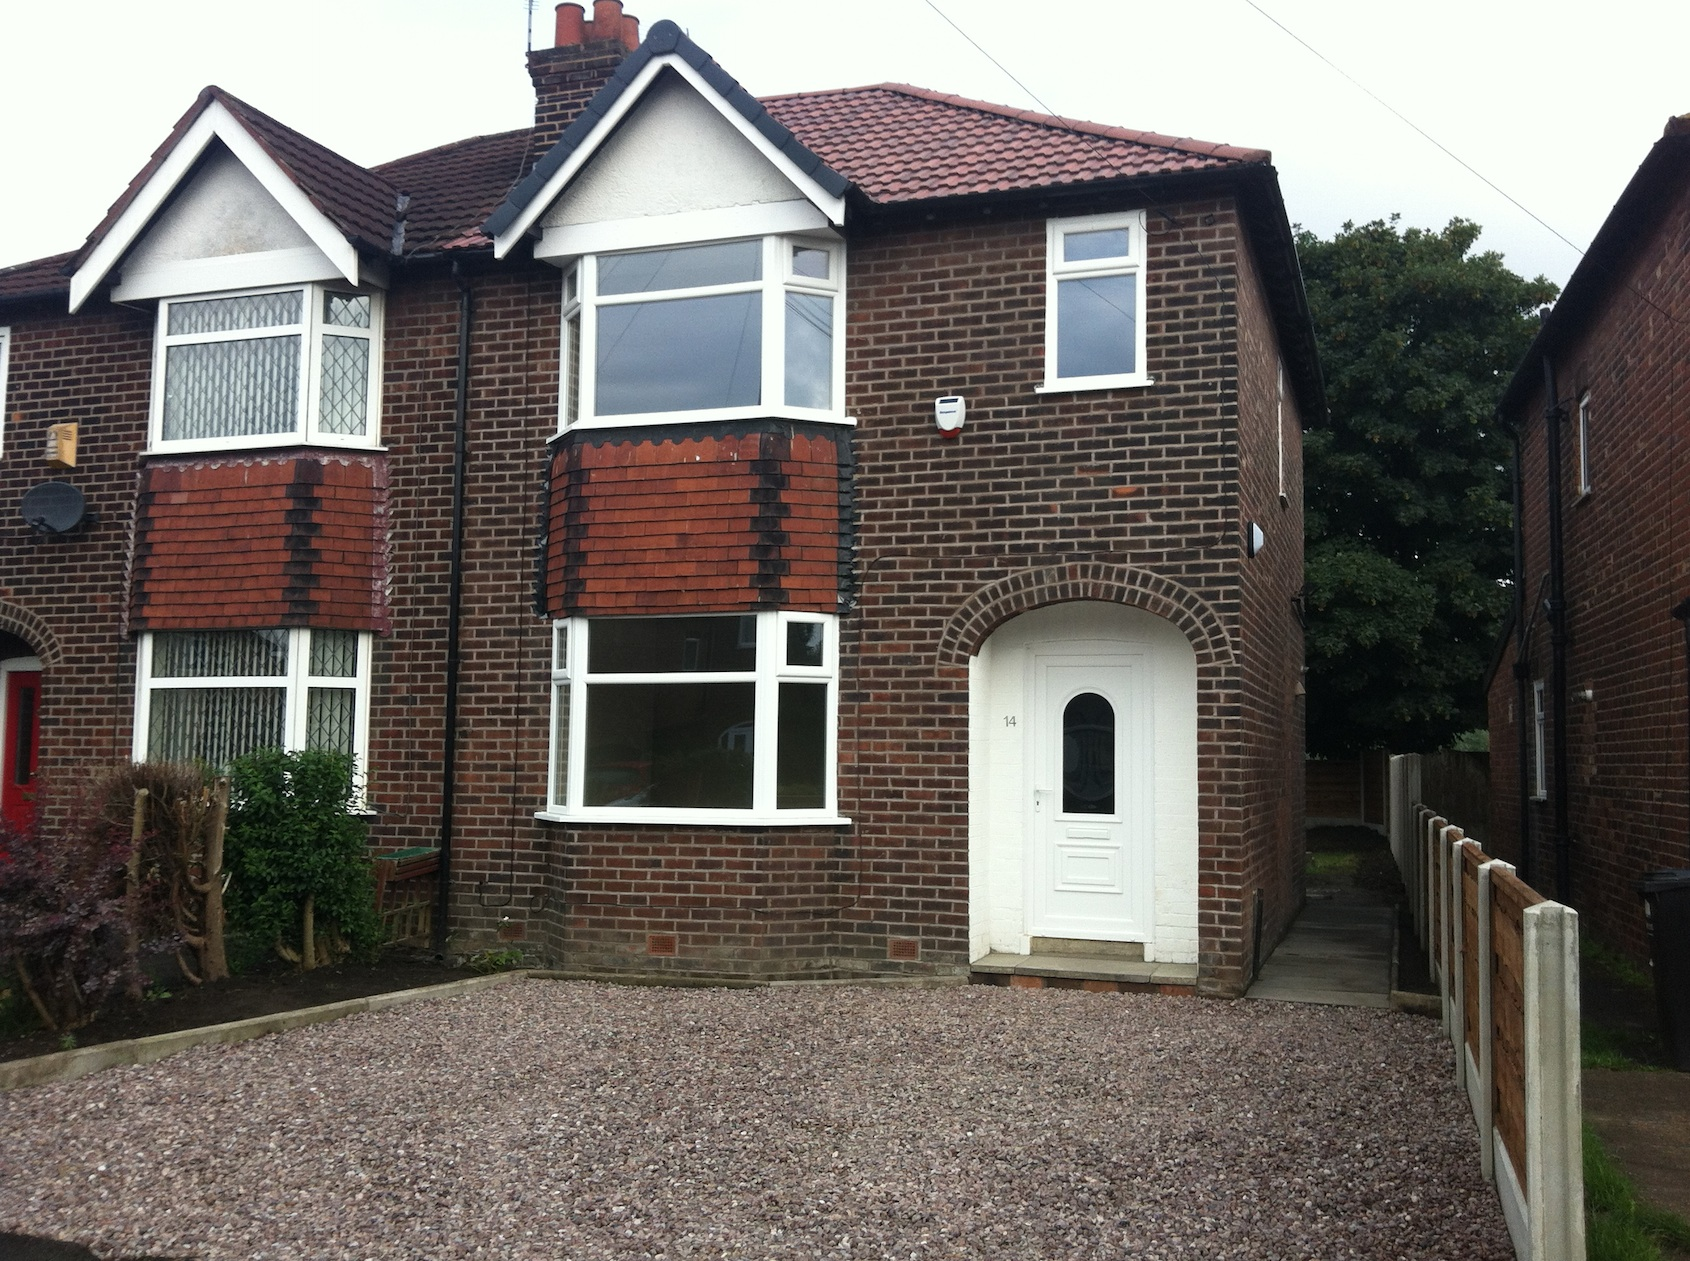 Belvedere Drive | £825 | 3 Bed - A fantastic family home with a drive, garden and views.